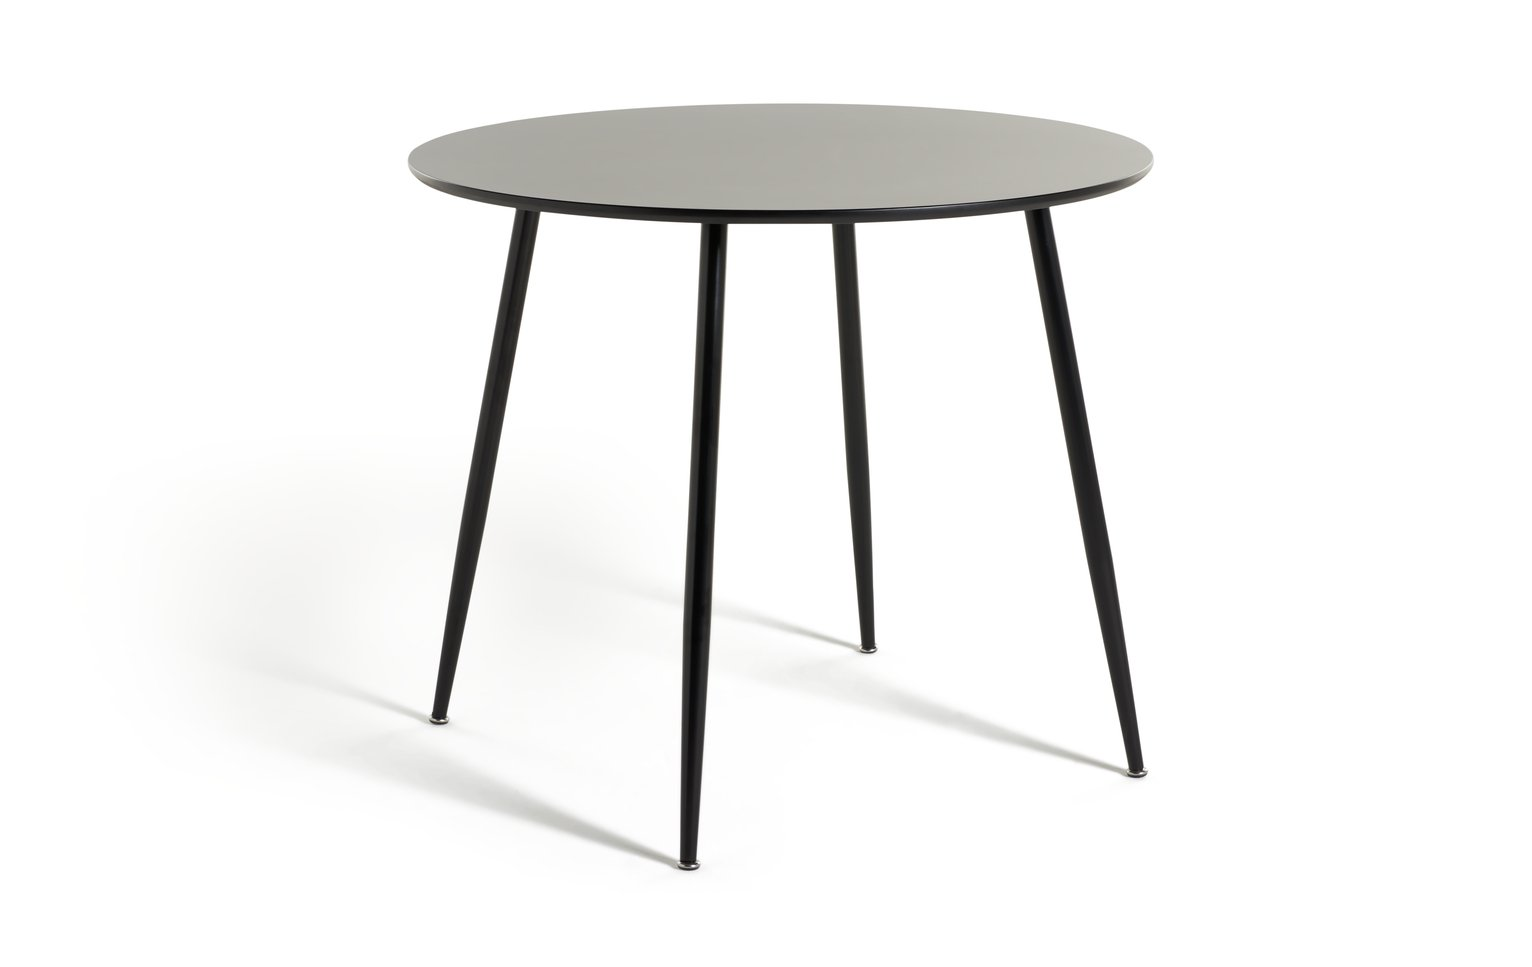 Habitat Beni Round 4 Seater Dining Table - Black